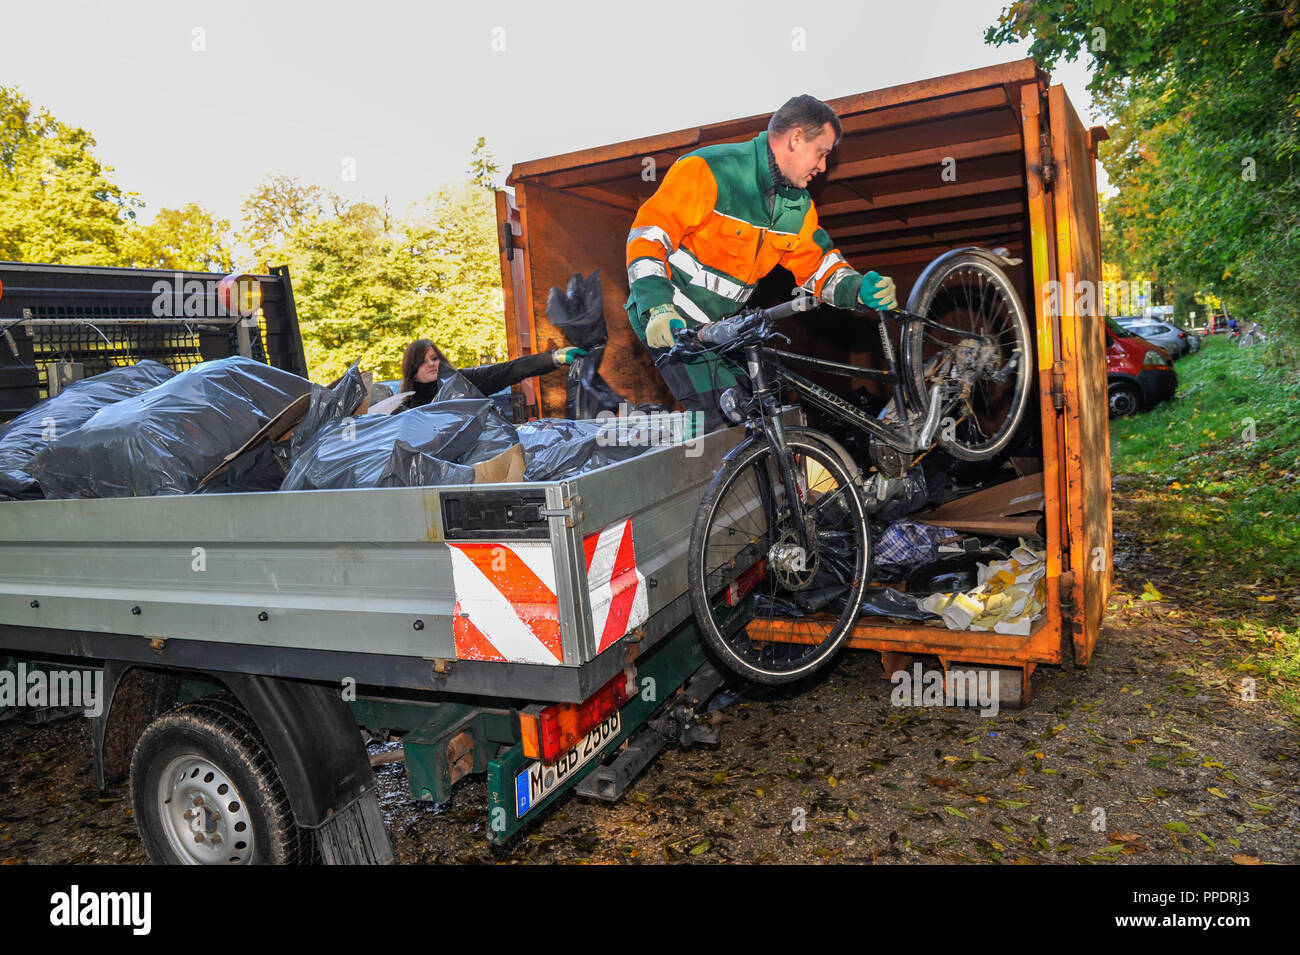 Large Ramadama (cleanup campaign) of the Isar fishermen, supported by the Waste Management Company Munich (AWM), from the weir at Oberfoehring to Grosshesseloher bridge. - Stock Image